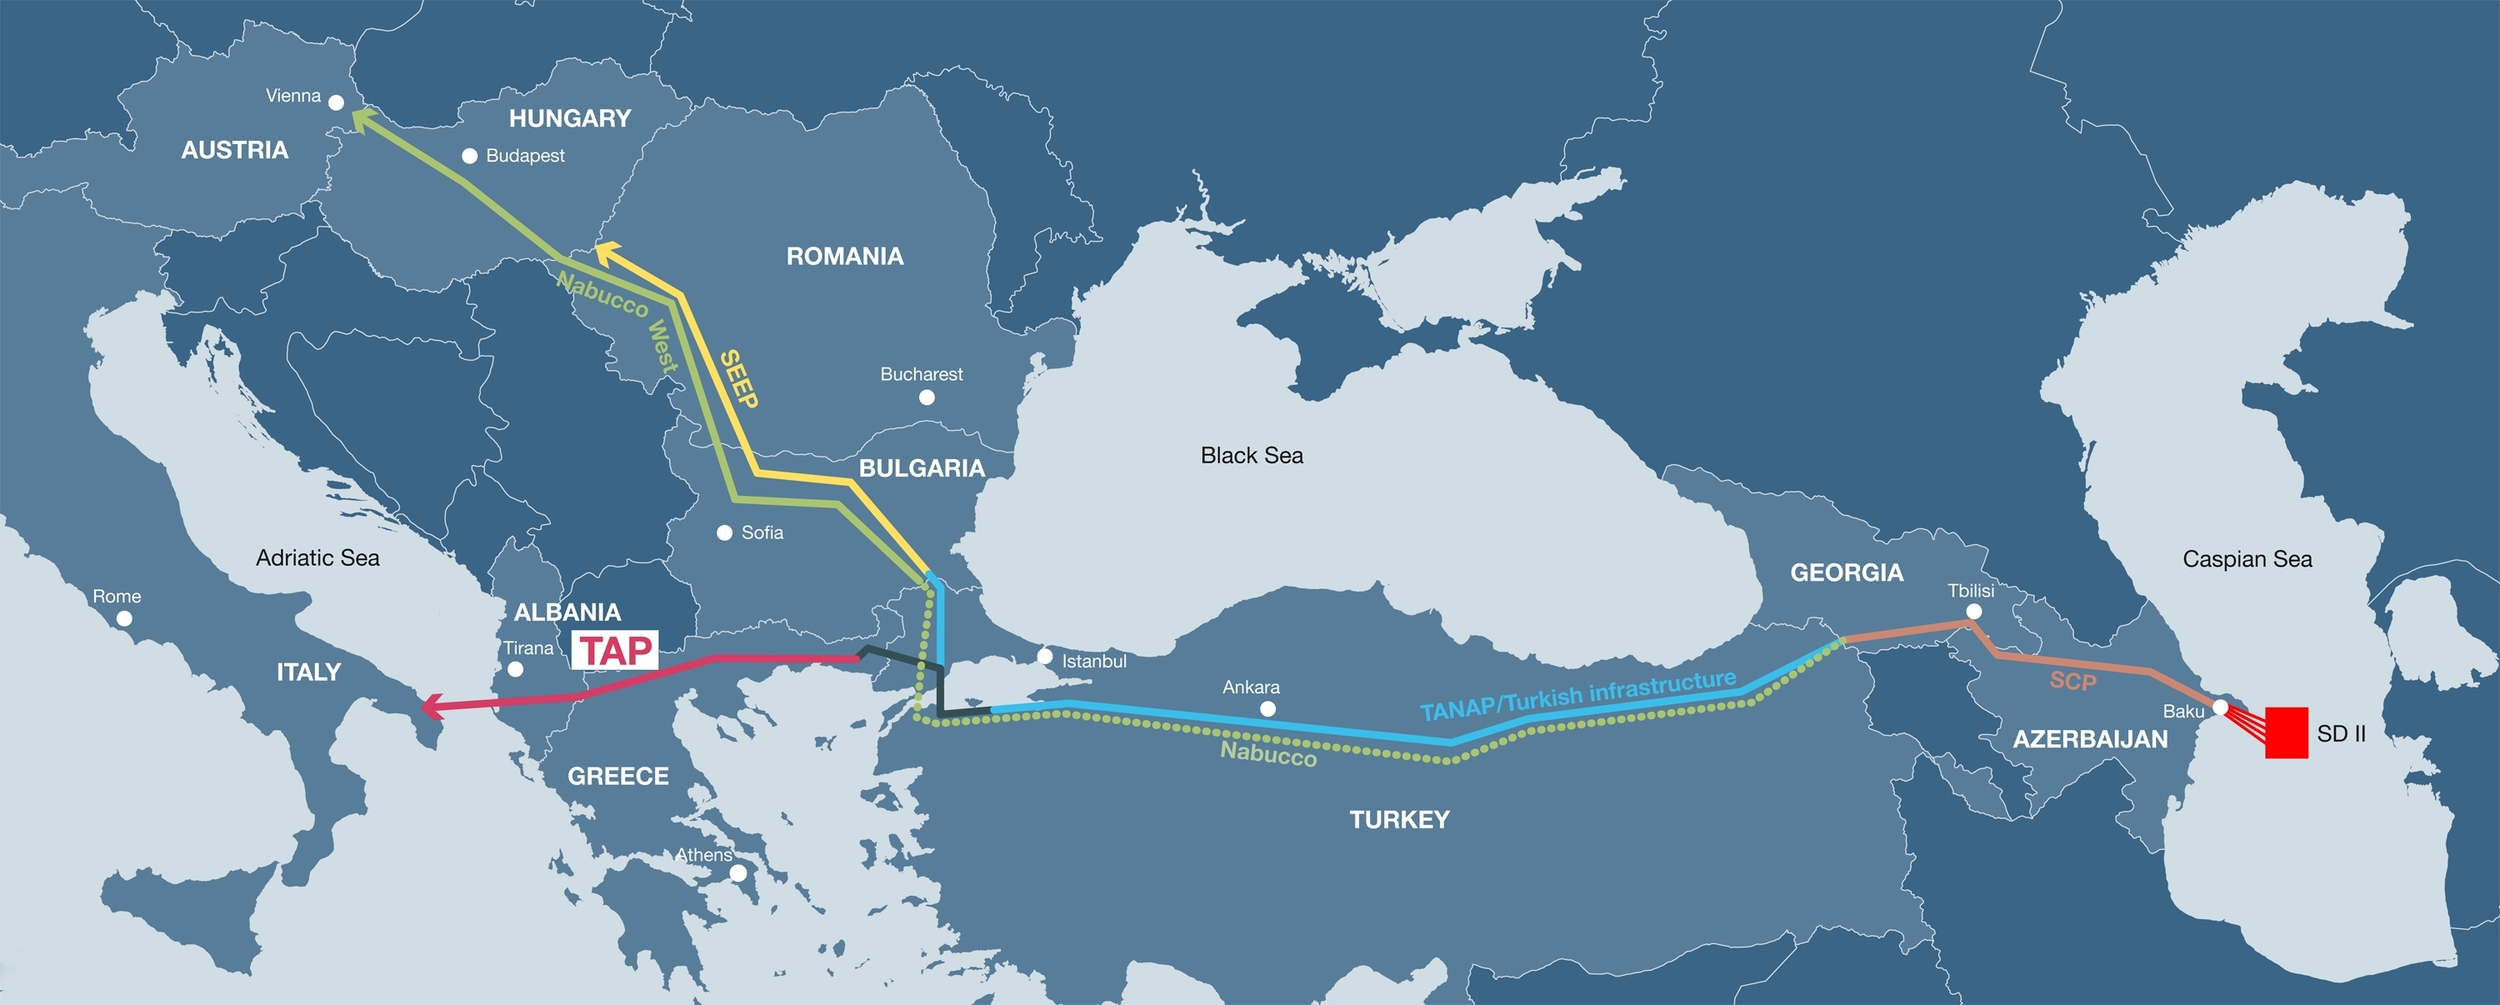 SD_export_routes_2012.jpg